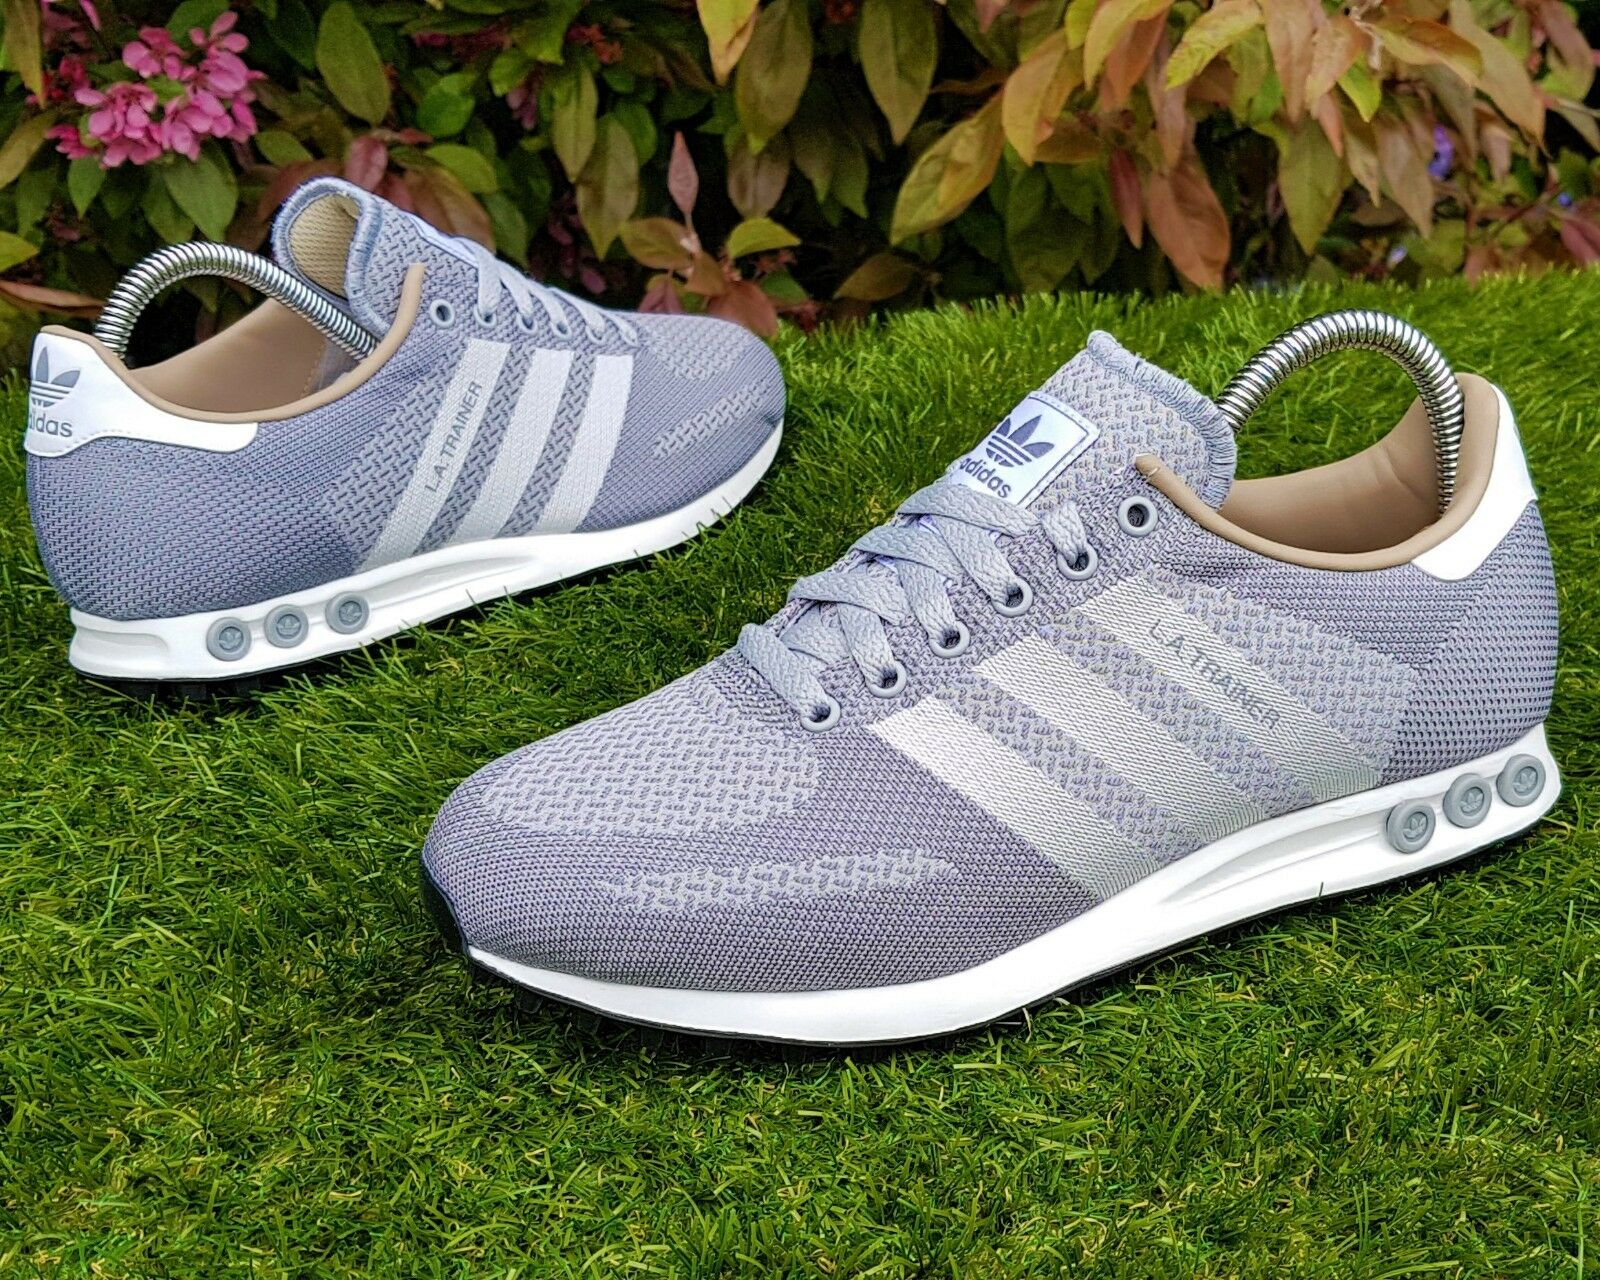 BNWB & Genuine Adidas Originals ® LA Trainer Weave Gris Trainers UK